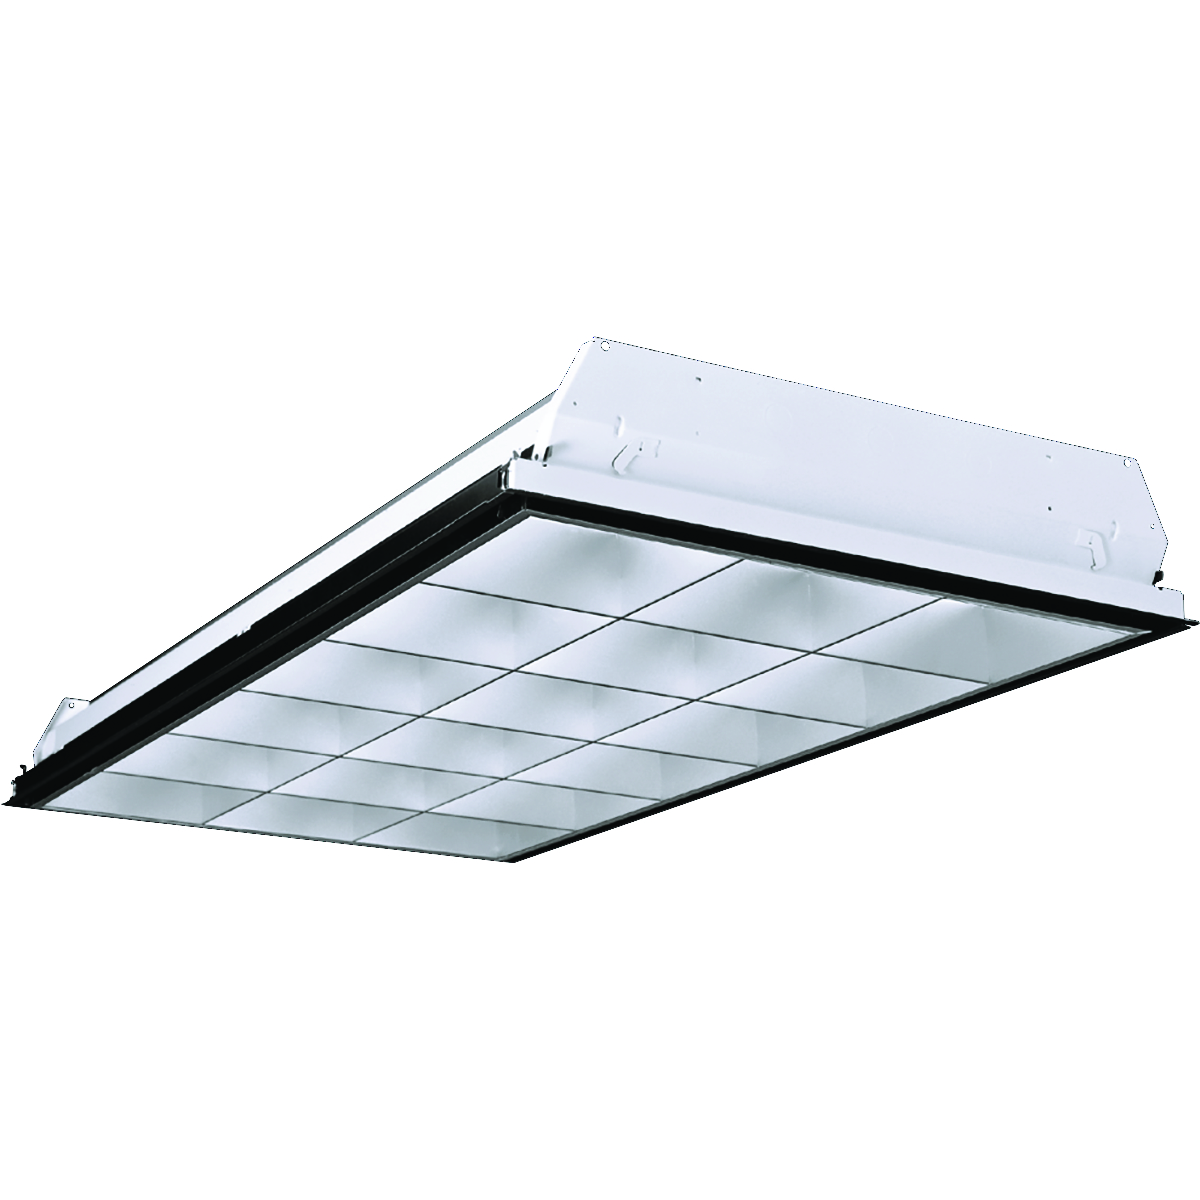 Recessed linear troffers commercial indoor lighting lighting p4d arubaitofo Choice Image